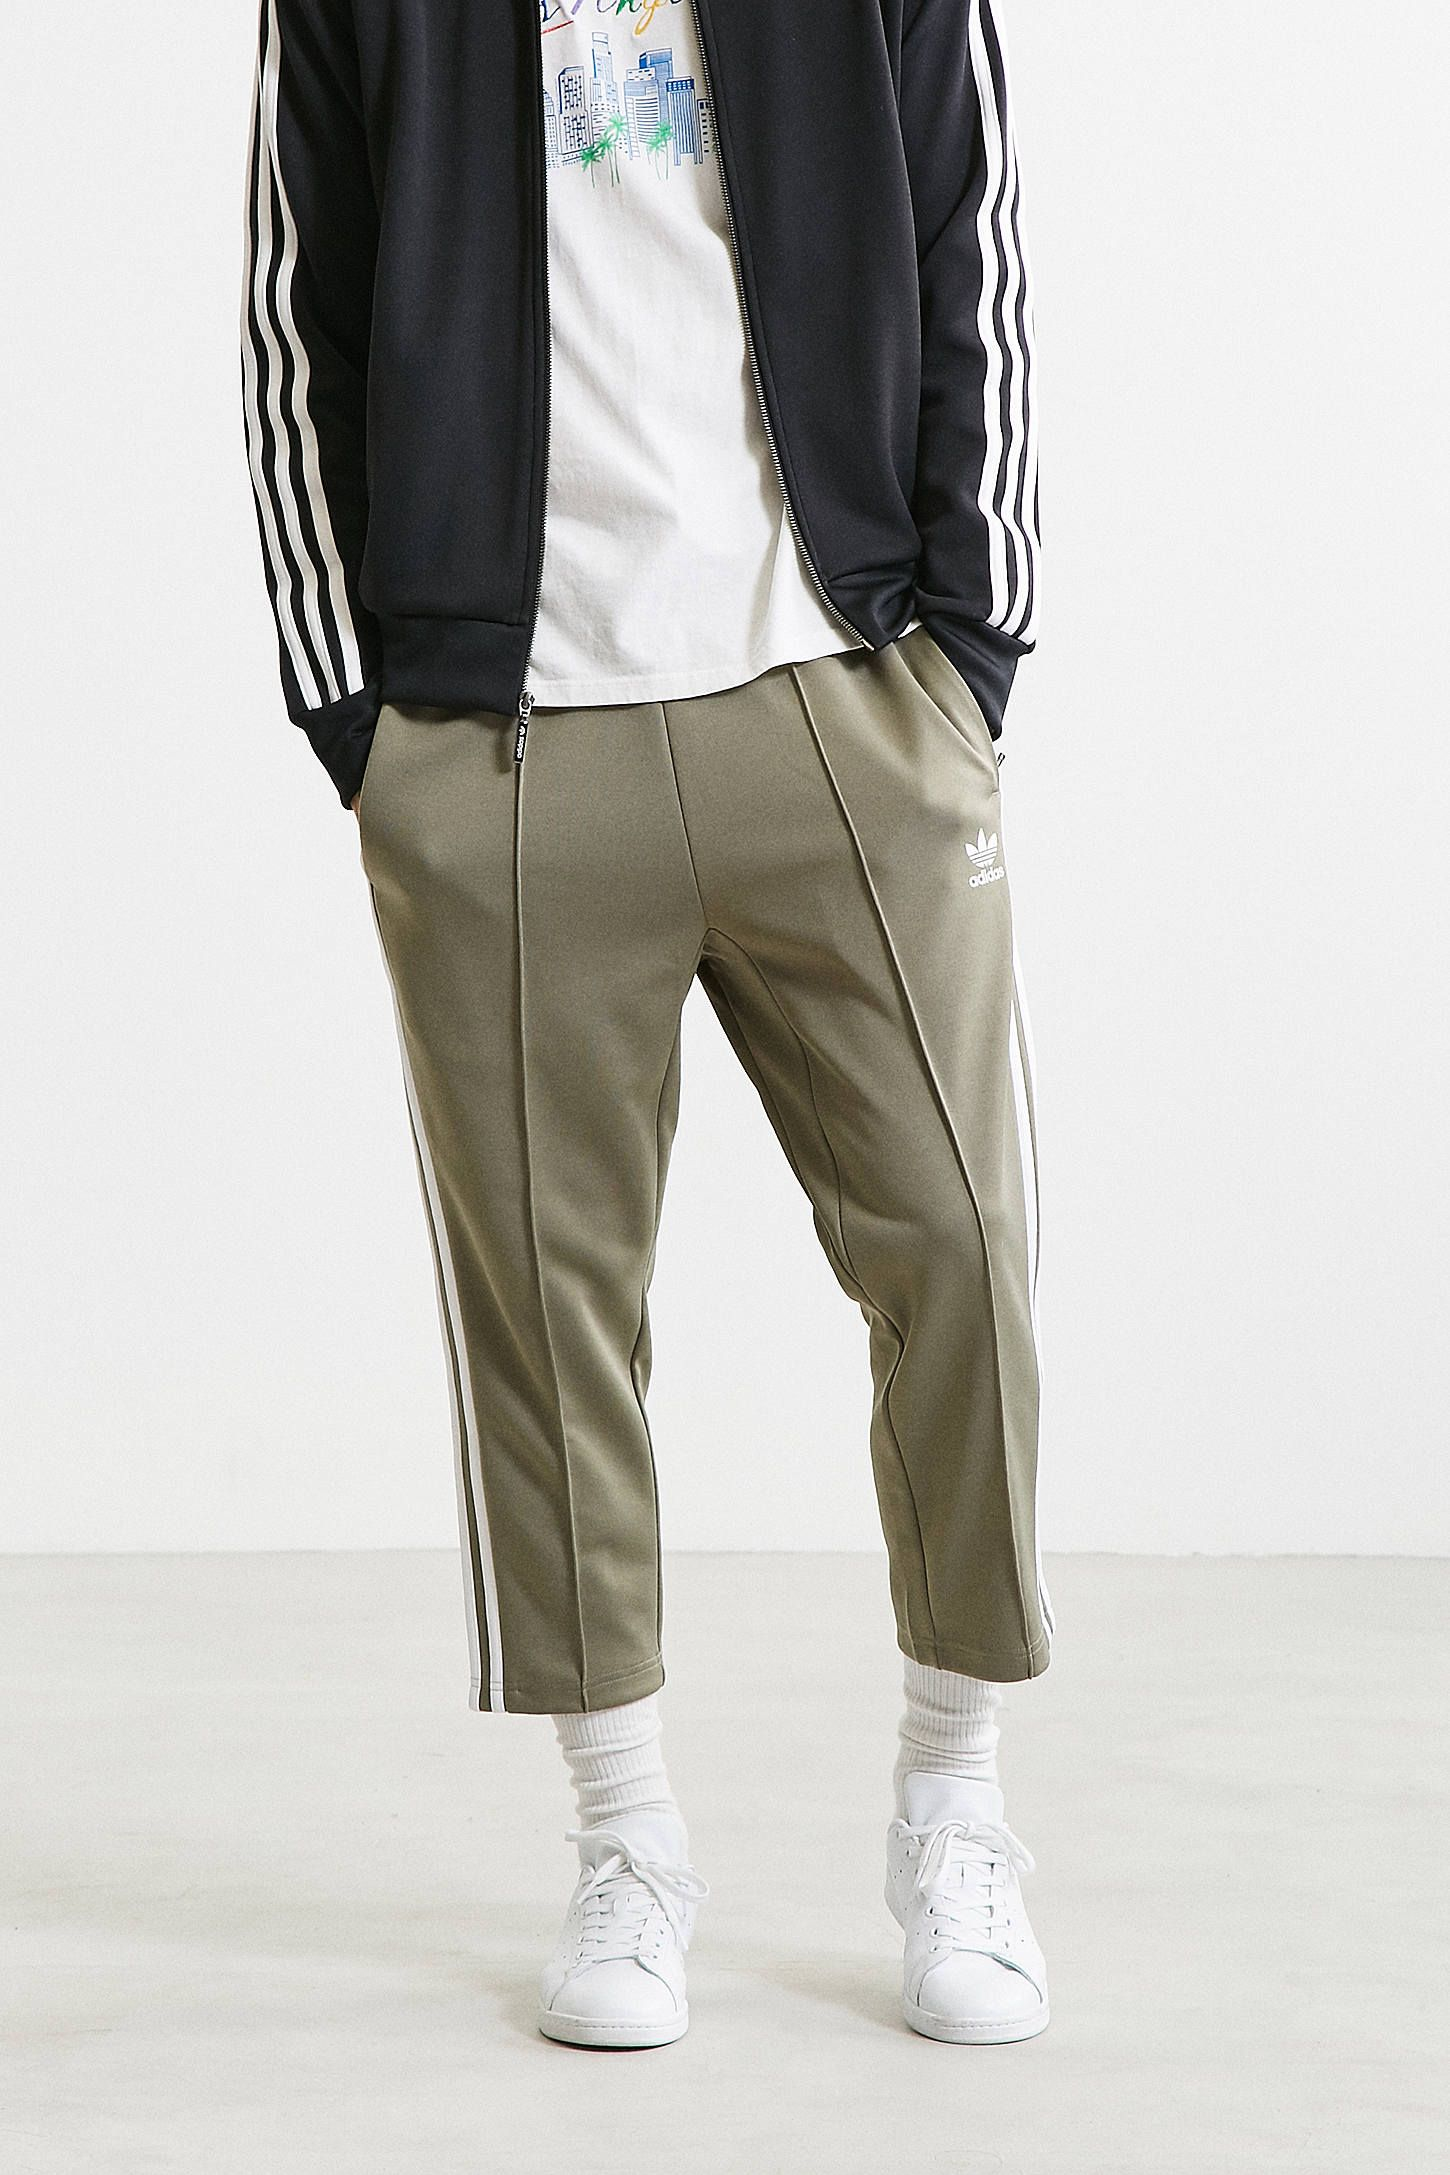 df994e465 Slide View  3  adidas Superstar Relaxed Cropped Track Pant